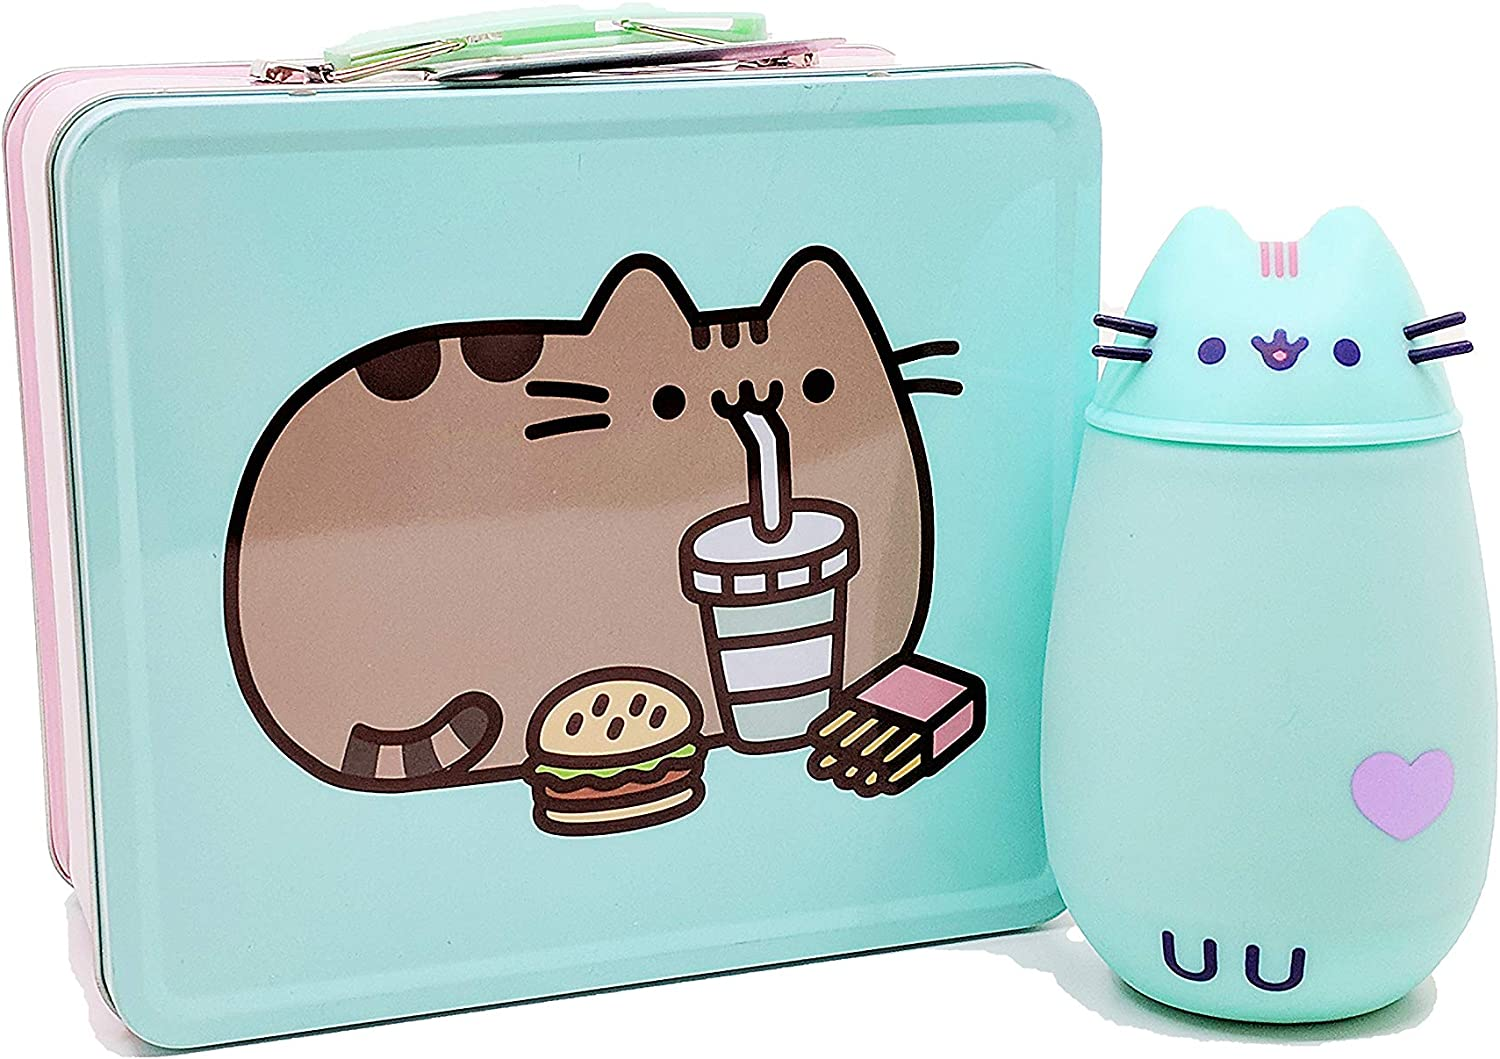 Isaac Morris Pusheen Lunch Set  Pusheen with Fast Food Lunch Box in Pink & Green and Pusheen Mint Green Stainless Steel Thermos with Whiskers